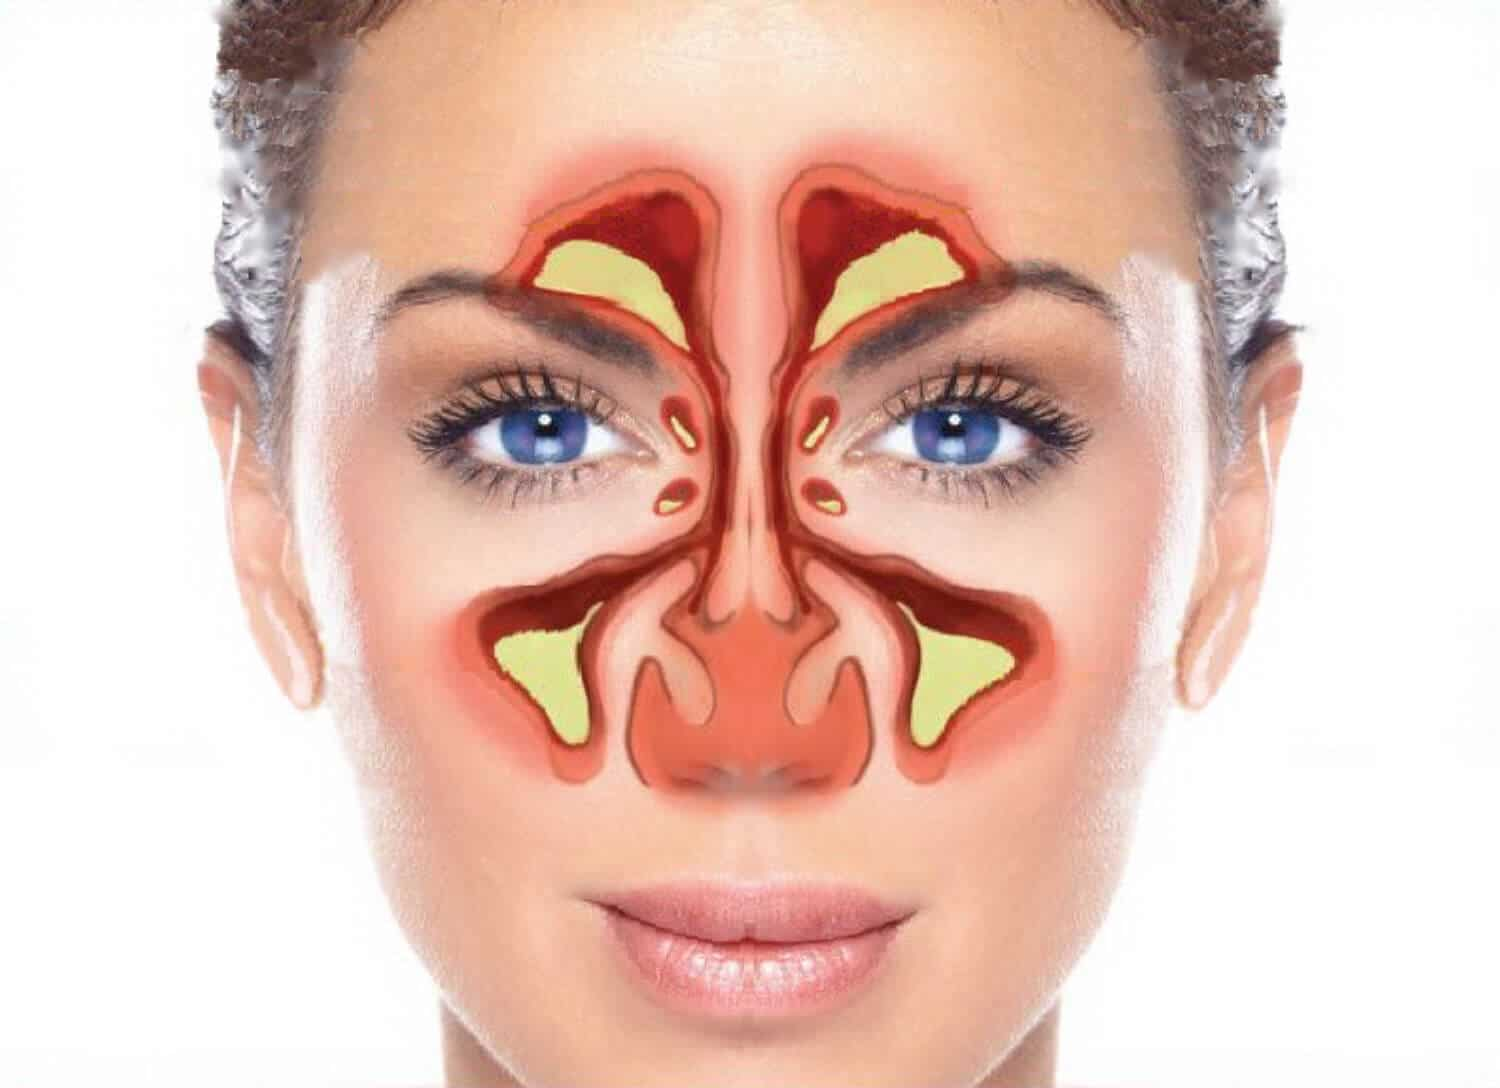 What Are the Sinuses? Pictures of Nasal Cavities |Sutra Neti Sinus Cavity Diagram